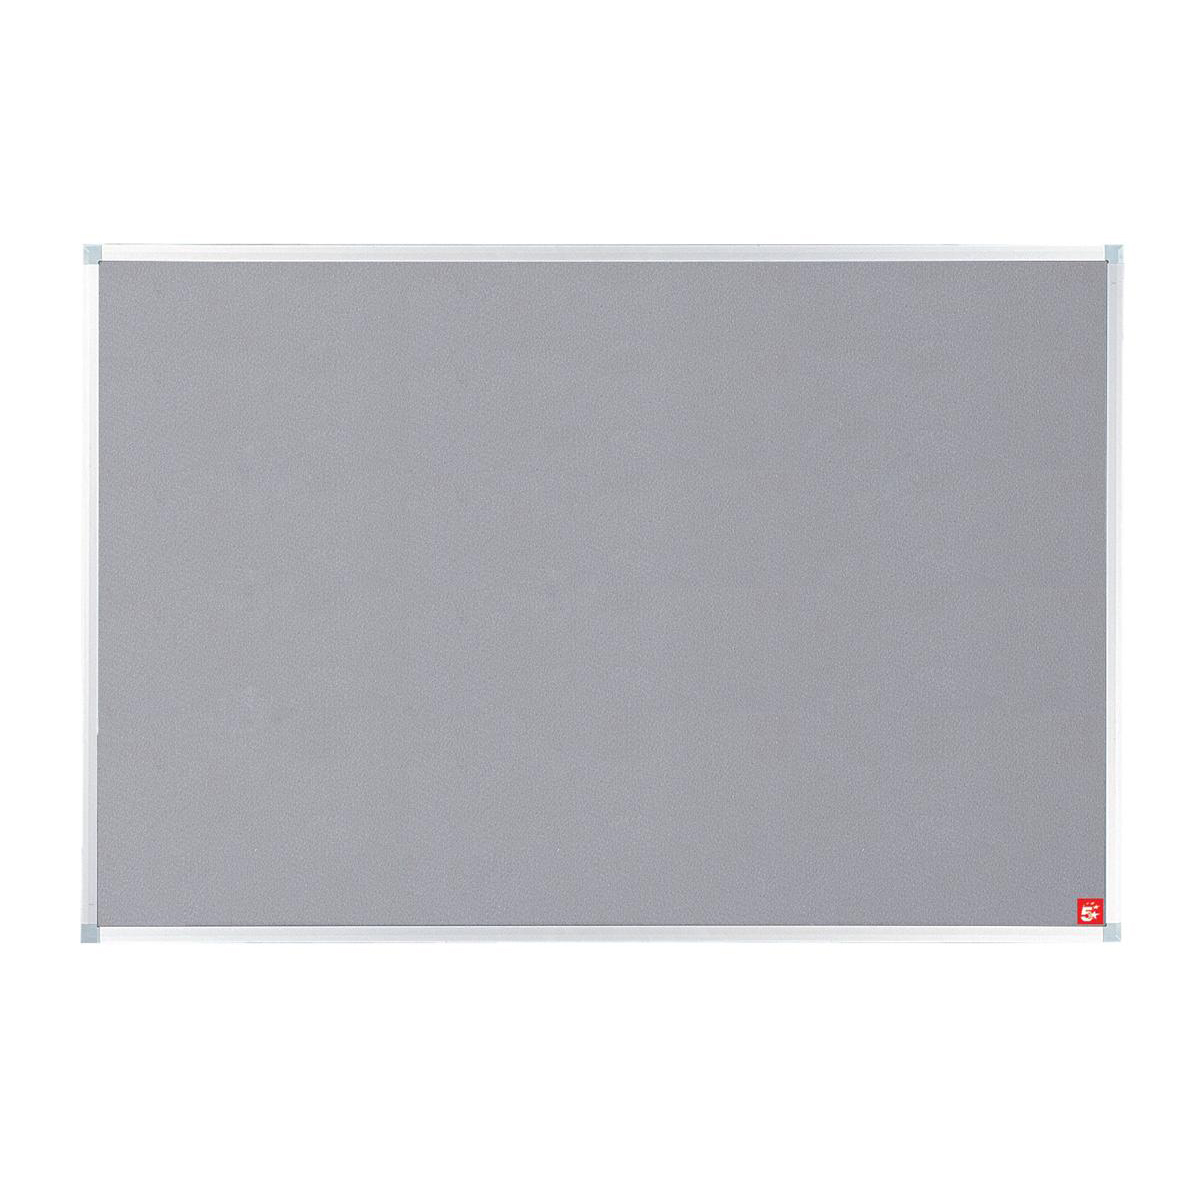 5 Star Office Noticeboard with Fixings and Aluminium Trim W1200xH900mm Grey